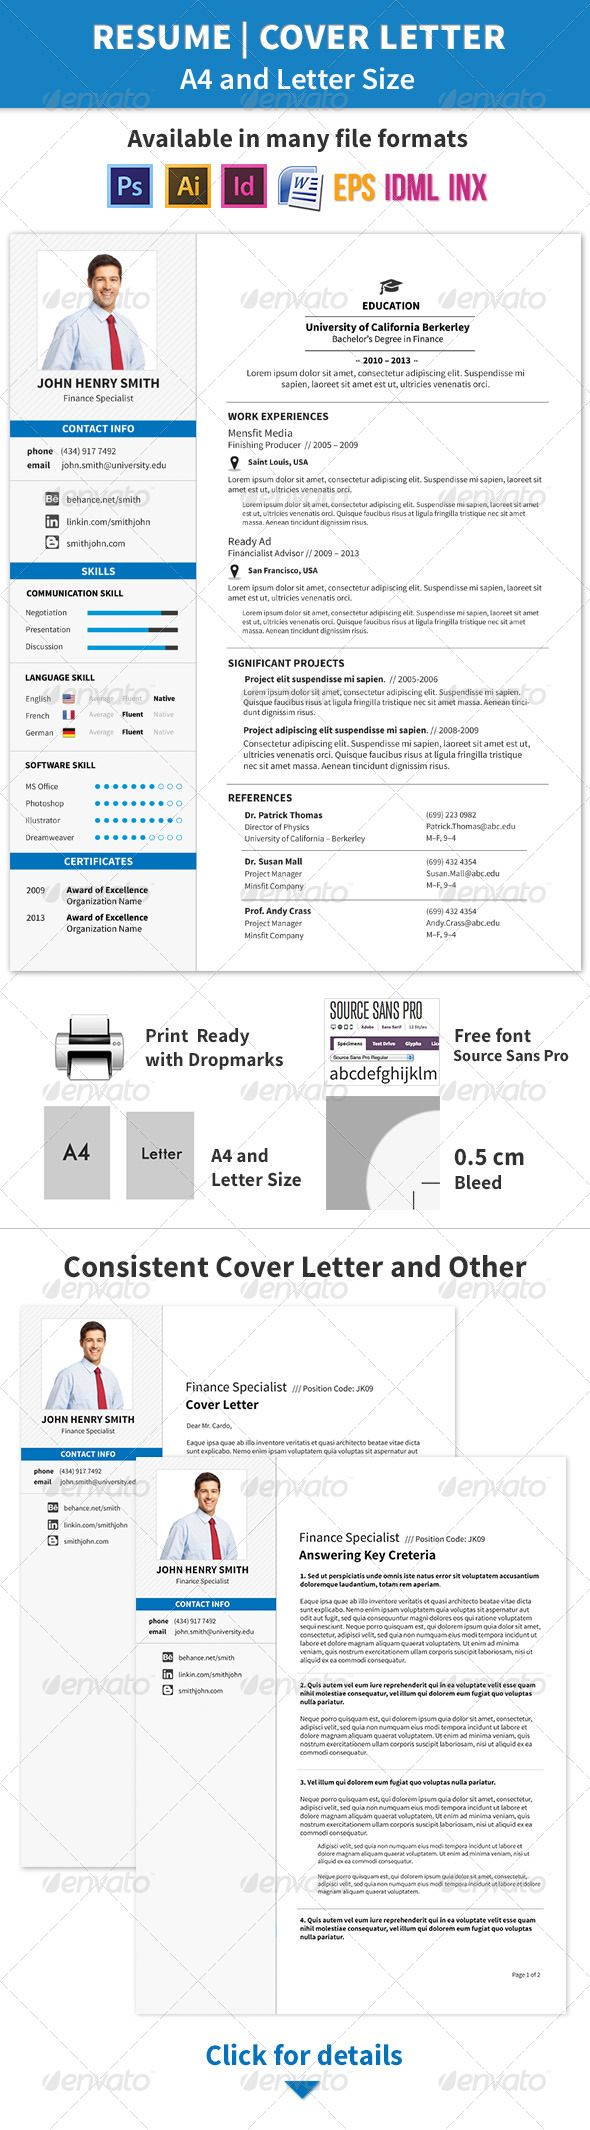 Font For Cover Letter Simple Best Font For Cover Letter ...